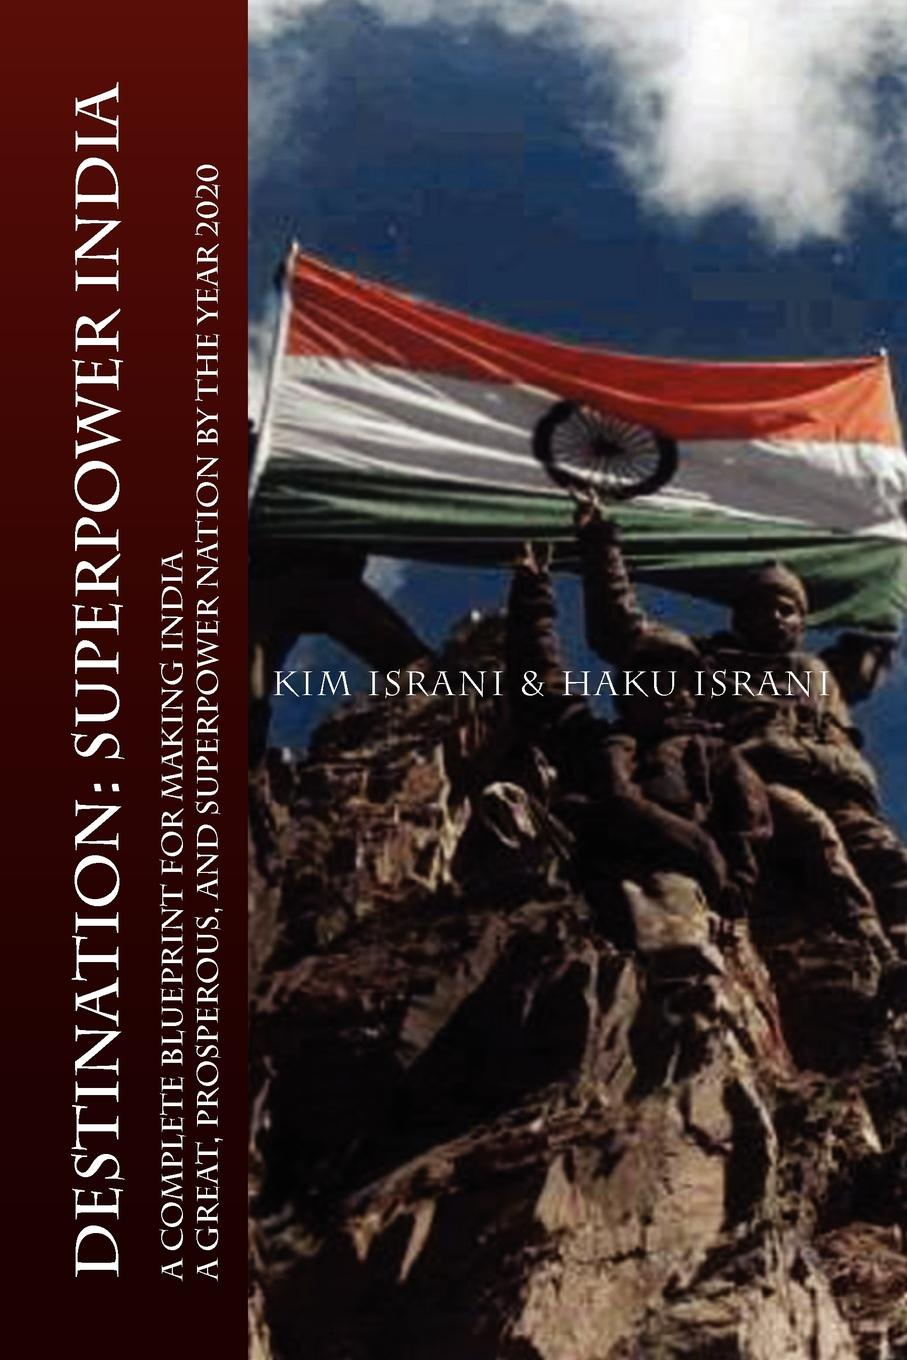 KIM ISRANI, HAKU ISRANI DESTINATION. SUPERPOWER INDIA: A COMPLETE BLUEPRINT FOR MAKING INDIA A GREAT, PROSPEROUS, AND SUPERPOWER NATION BY THE YEAR 2020 стоимость